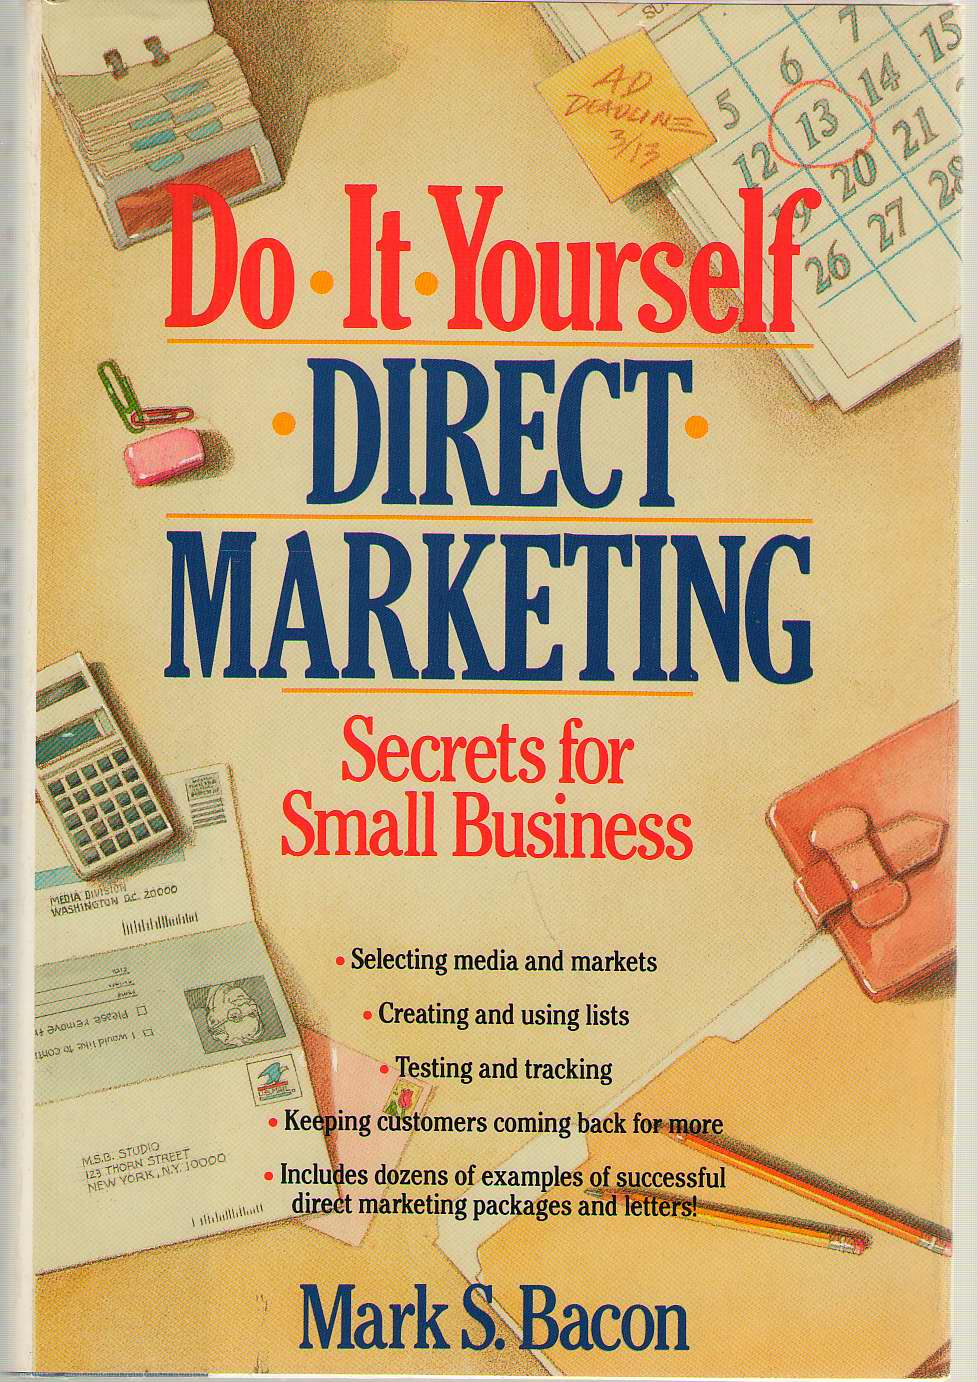 Do-it-yourself Direct Marketing Secrets for Small Business, Bacon, Mark S.